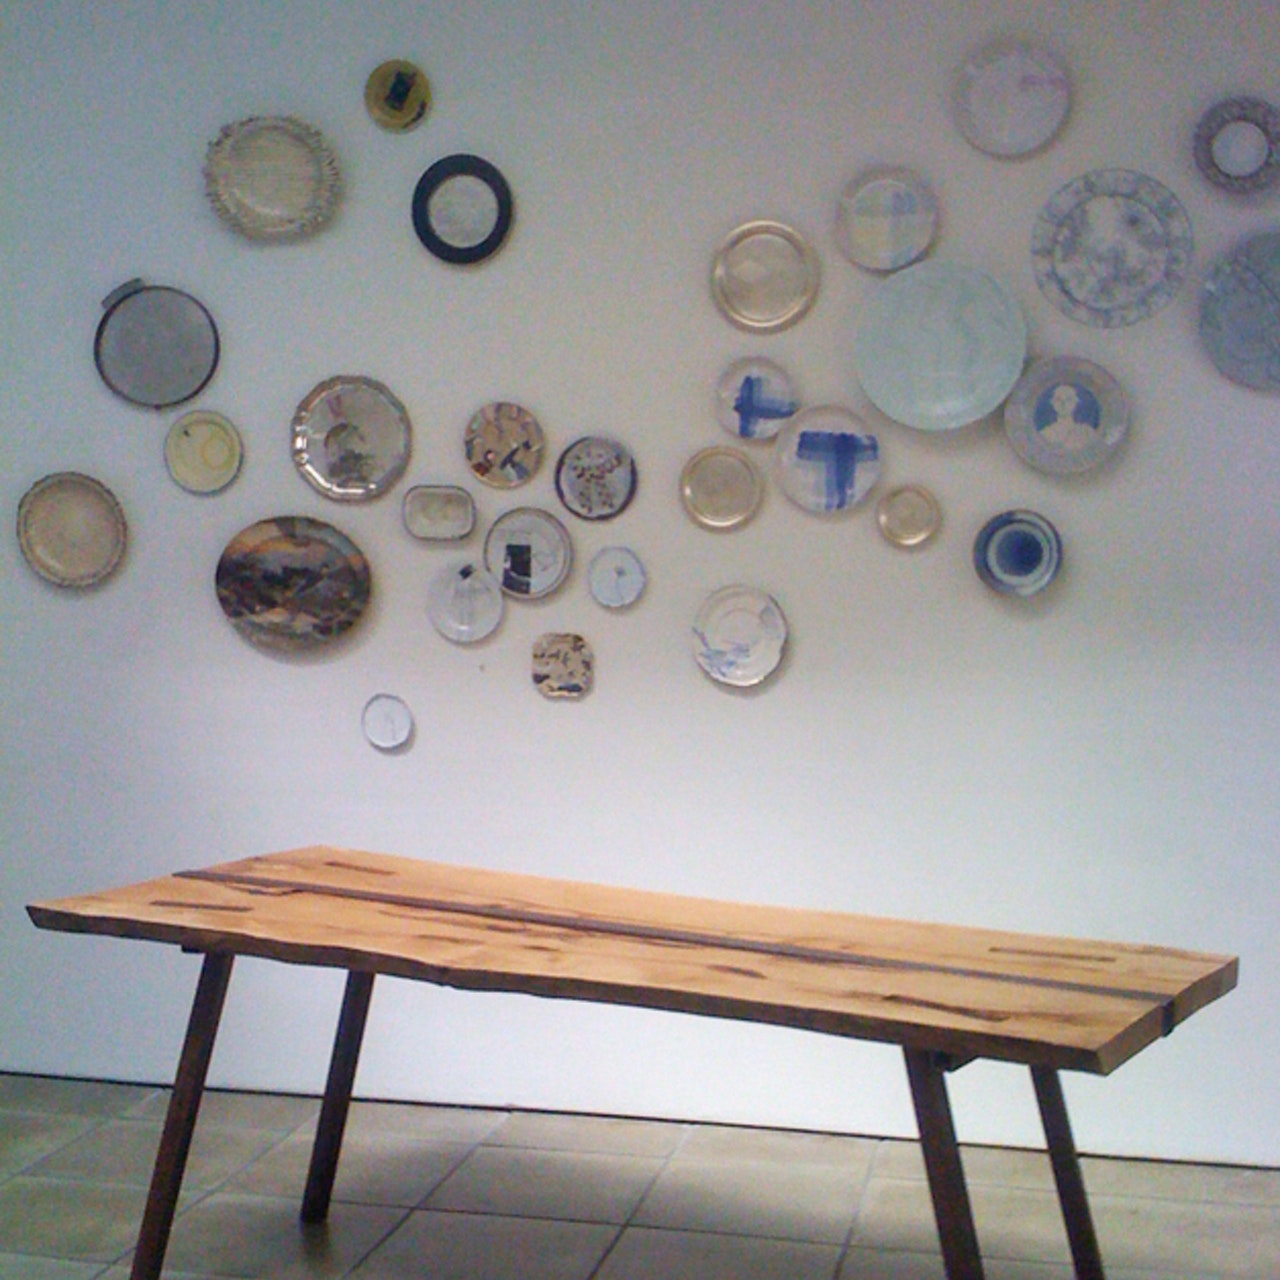 'From table to wall...' exhibition